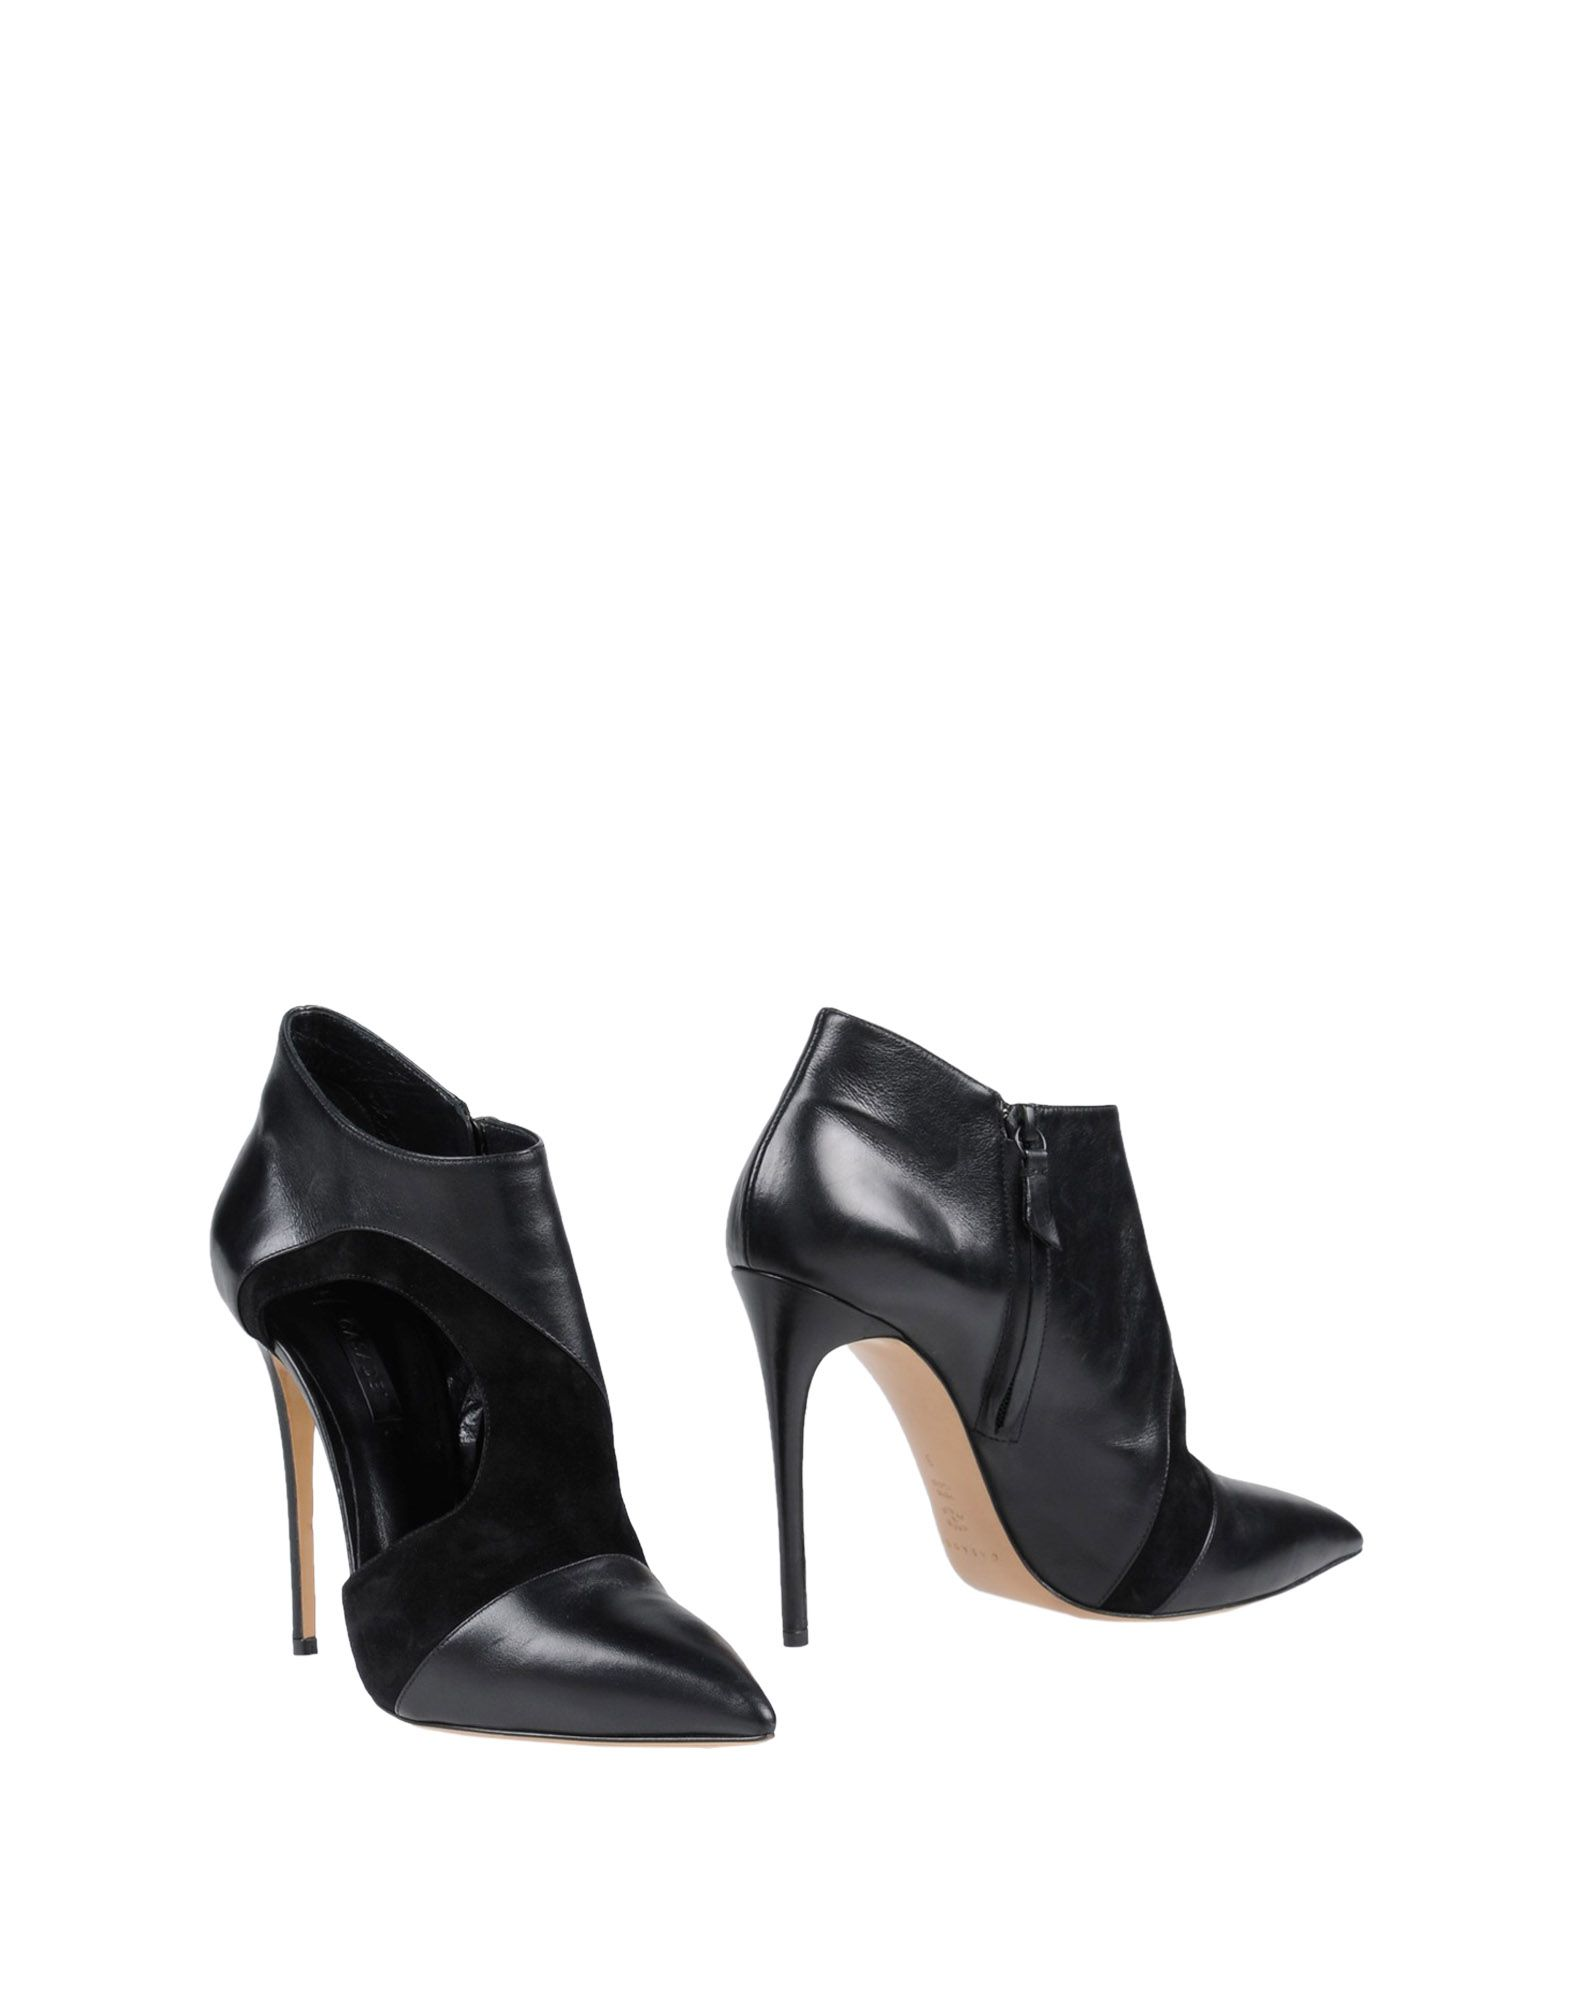 Bottine Casadei Femme - Bottines Casadei sur